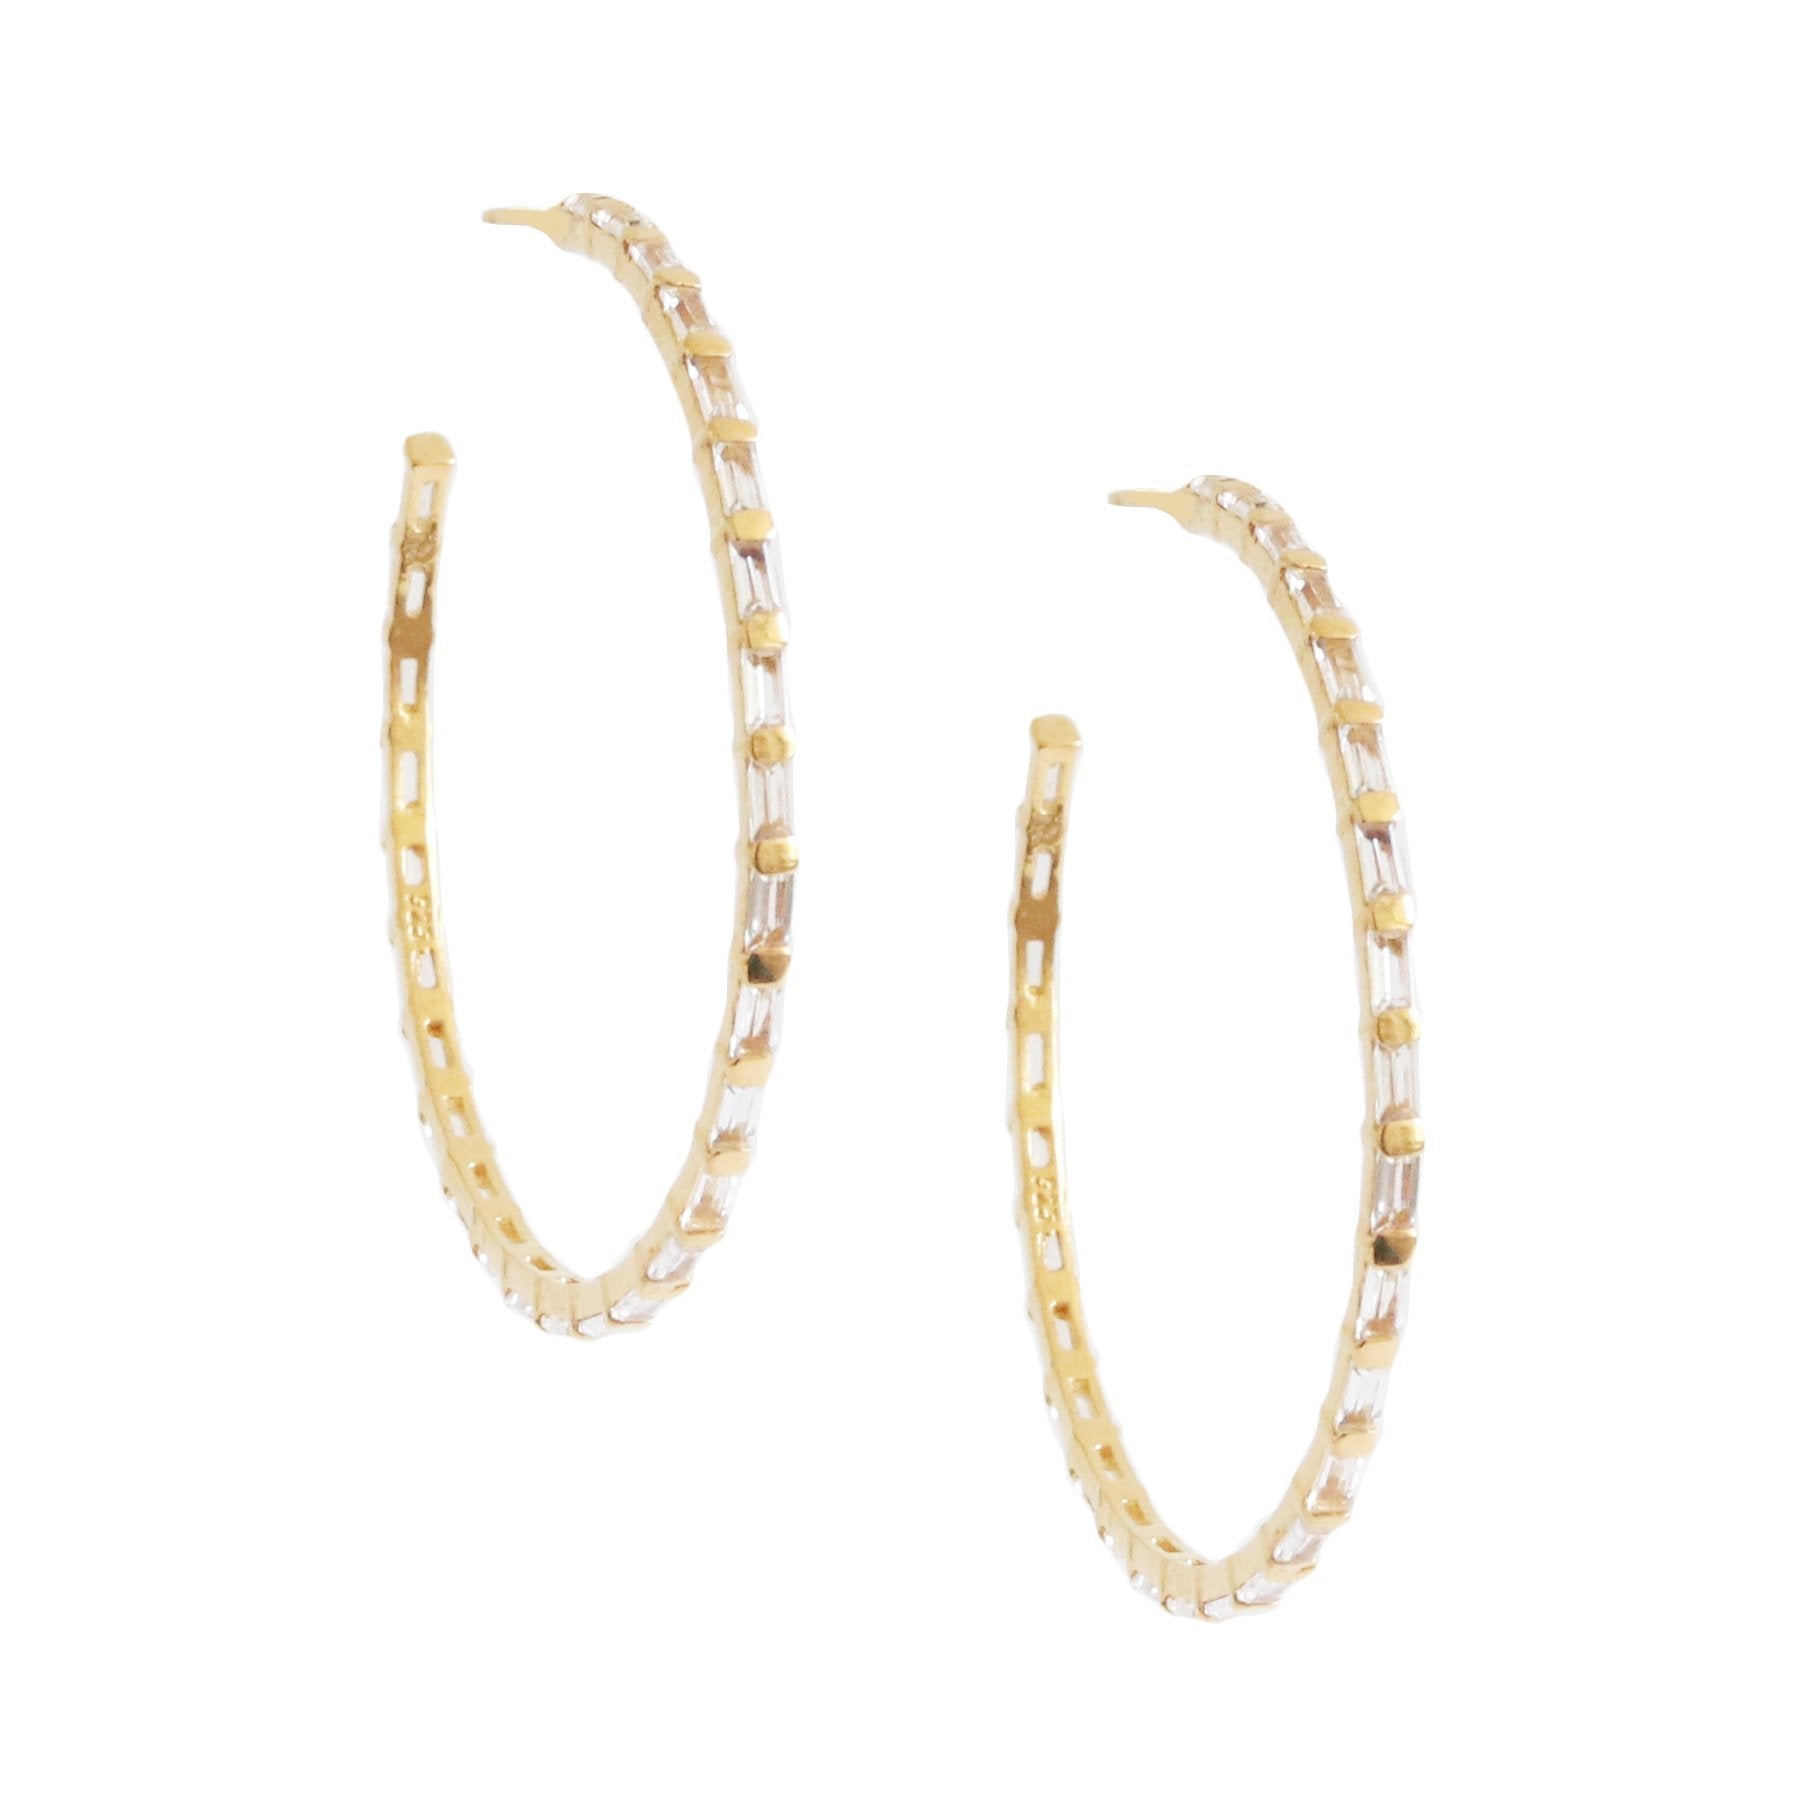 Loyal Studded Large Hoops - White Topaz & Gold - SO PRETTY CARA COTTER